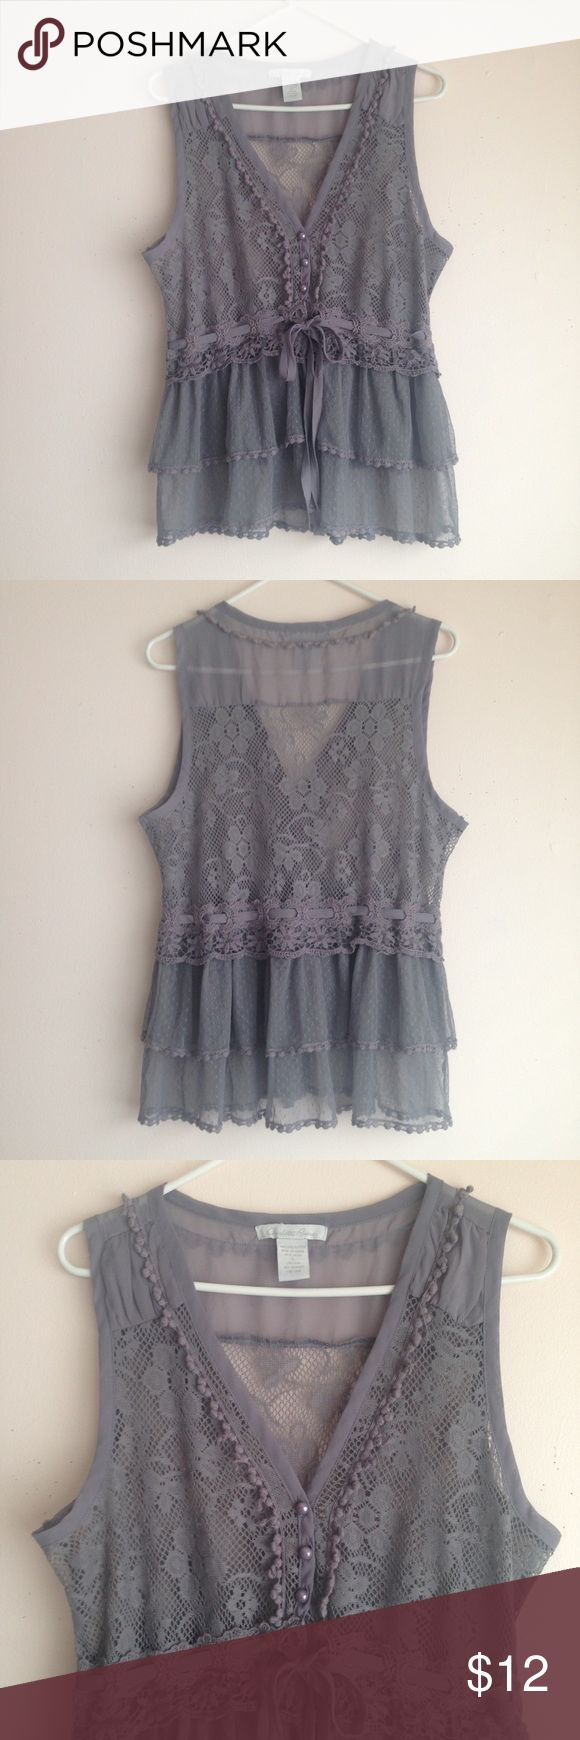 Charlotte Russe Boho Vest Length: approx. 24 inches  Width: approx. 18 inches at bust  •Material: 100% polyester •Material is sheer/see-through  •Floral lace in top has slight stretch •Lace & Crochet detailing •3 button closure at front top of Vest •Ribbon belt woven into vest     $5 off your 1st purchase! Use promo code NVMES. Purchase doesn't have to be from my closet.  Smoke free, cat friendly home Charlotte Russe Jackets & Coats Vests